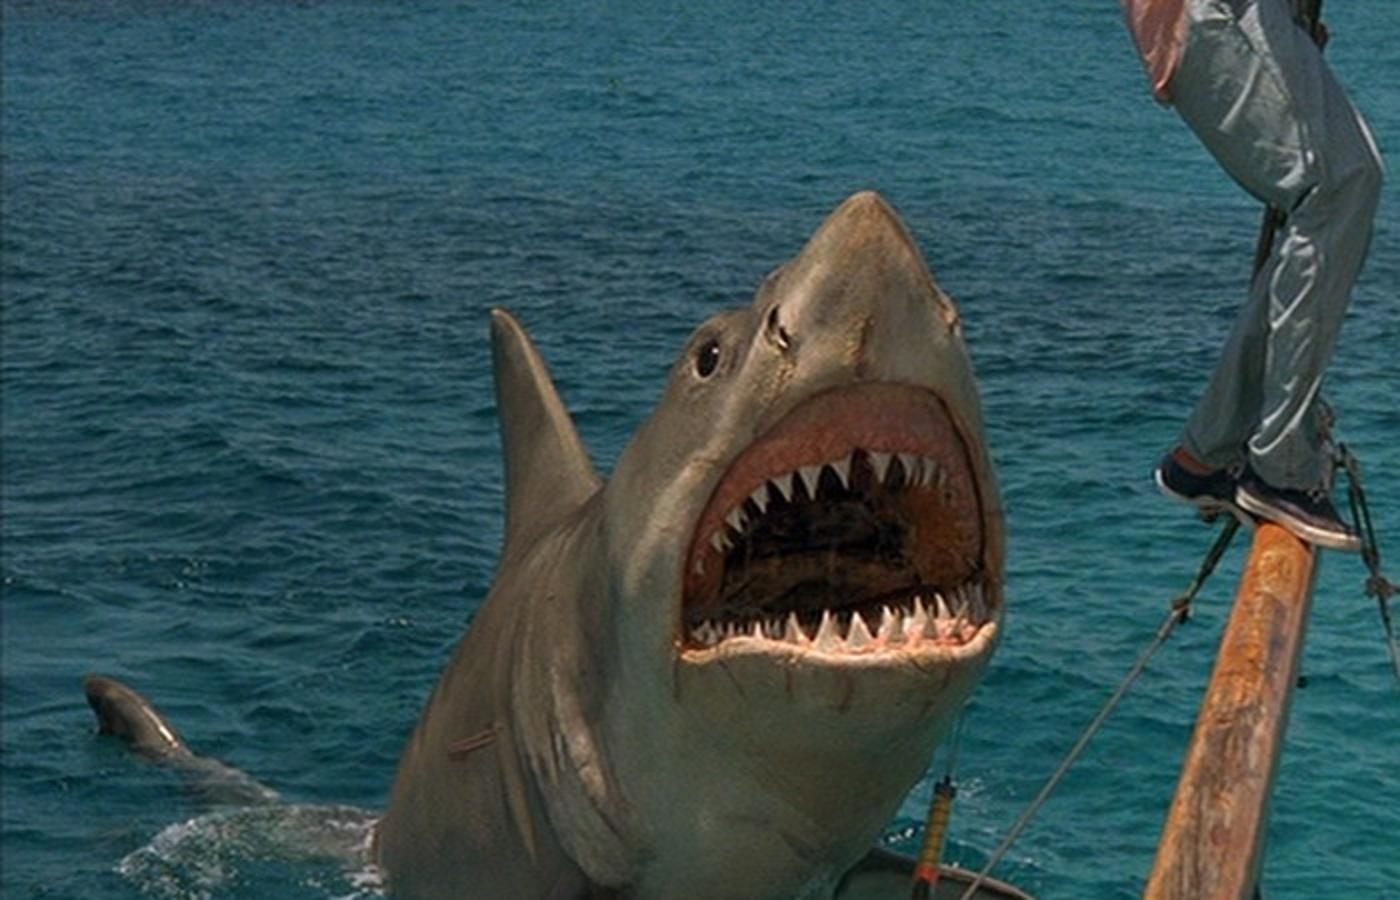 quotthat was a franchisequot � jaws bloody disgusting